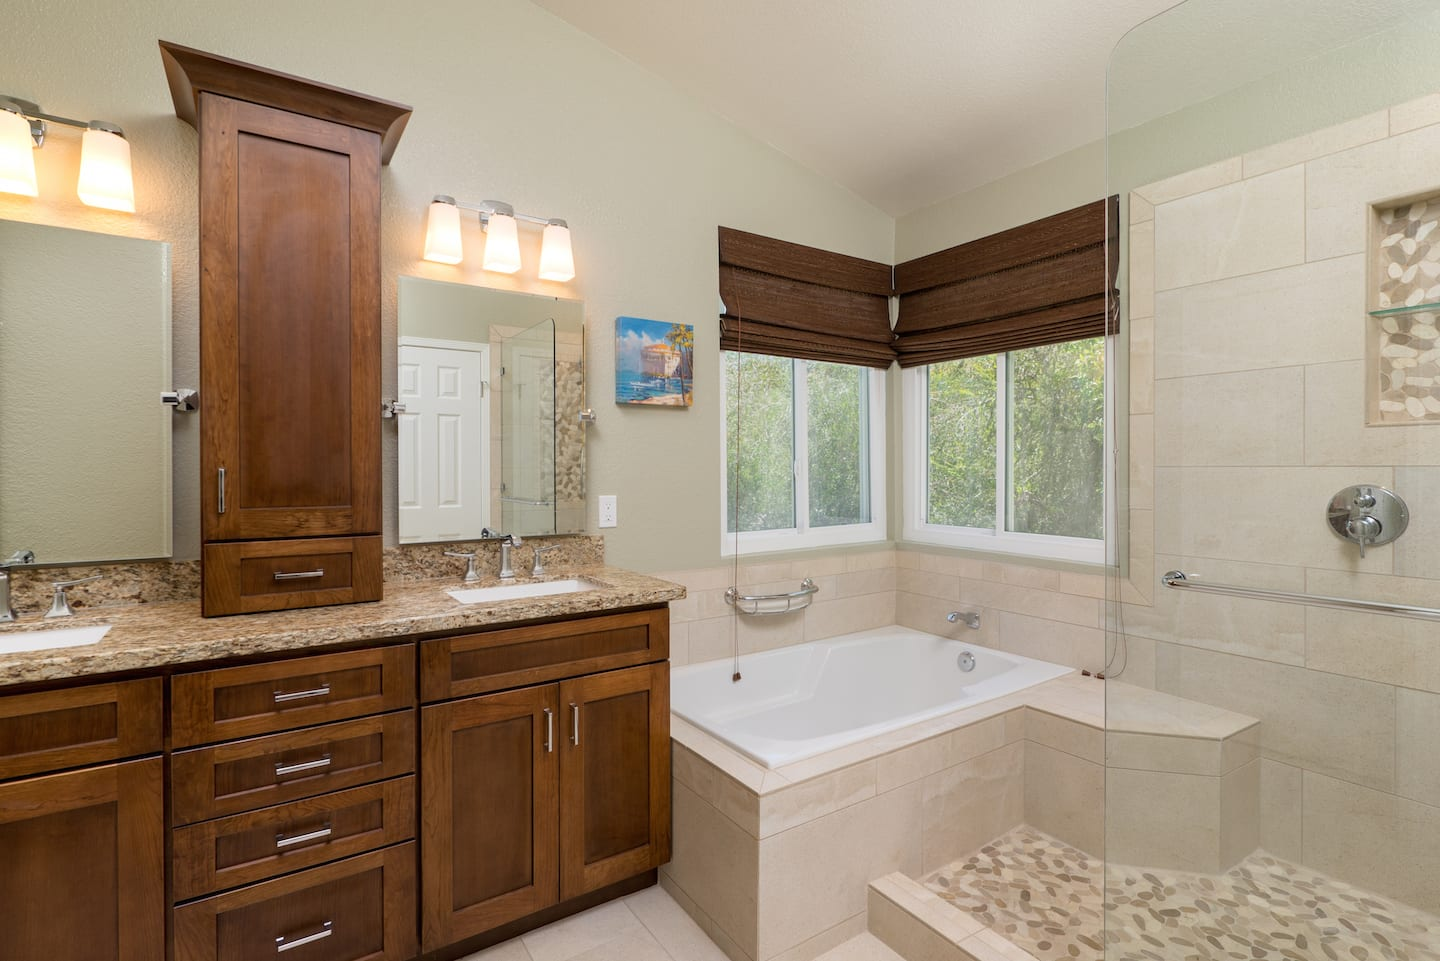 Remodel Bathroom bathroom remodeling tips Remodeled Bathroom With Cabinets Tile And Tub